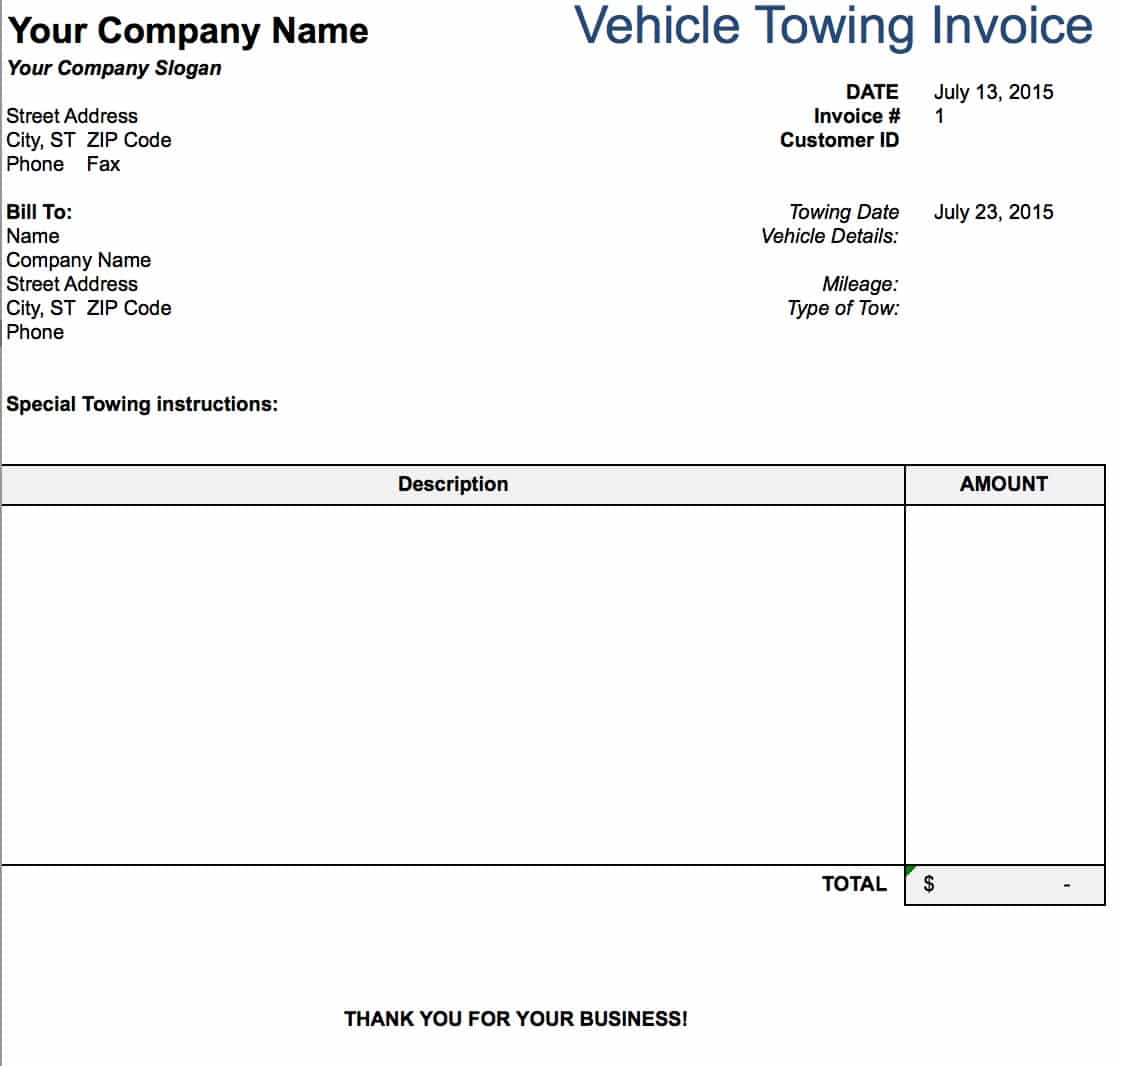 Free Tow Service Invoice Template Excel PDF Word Doc - What is an invoice for for service business